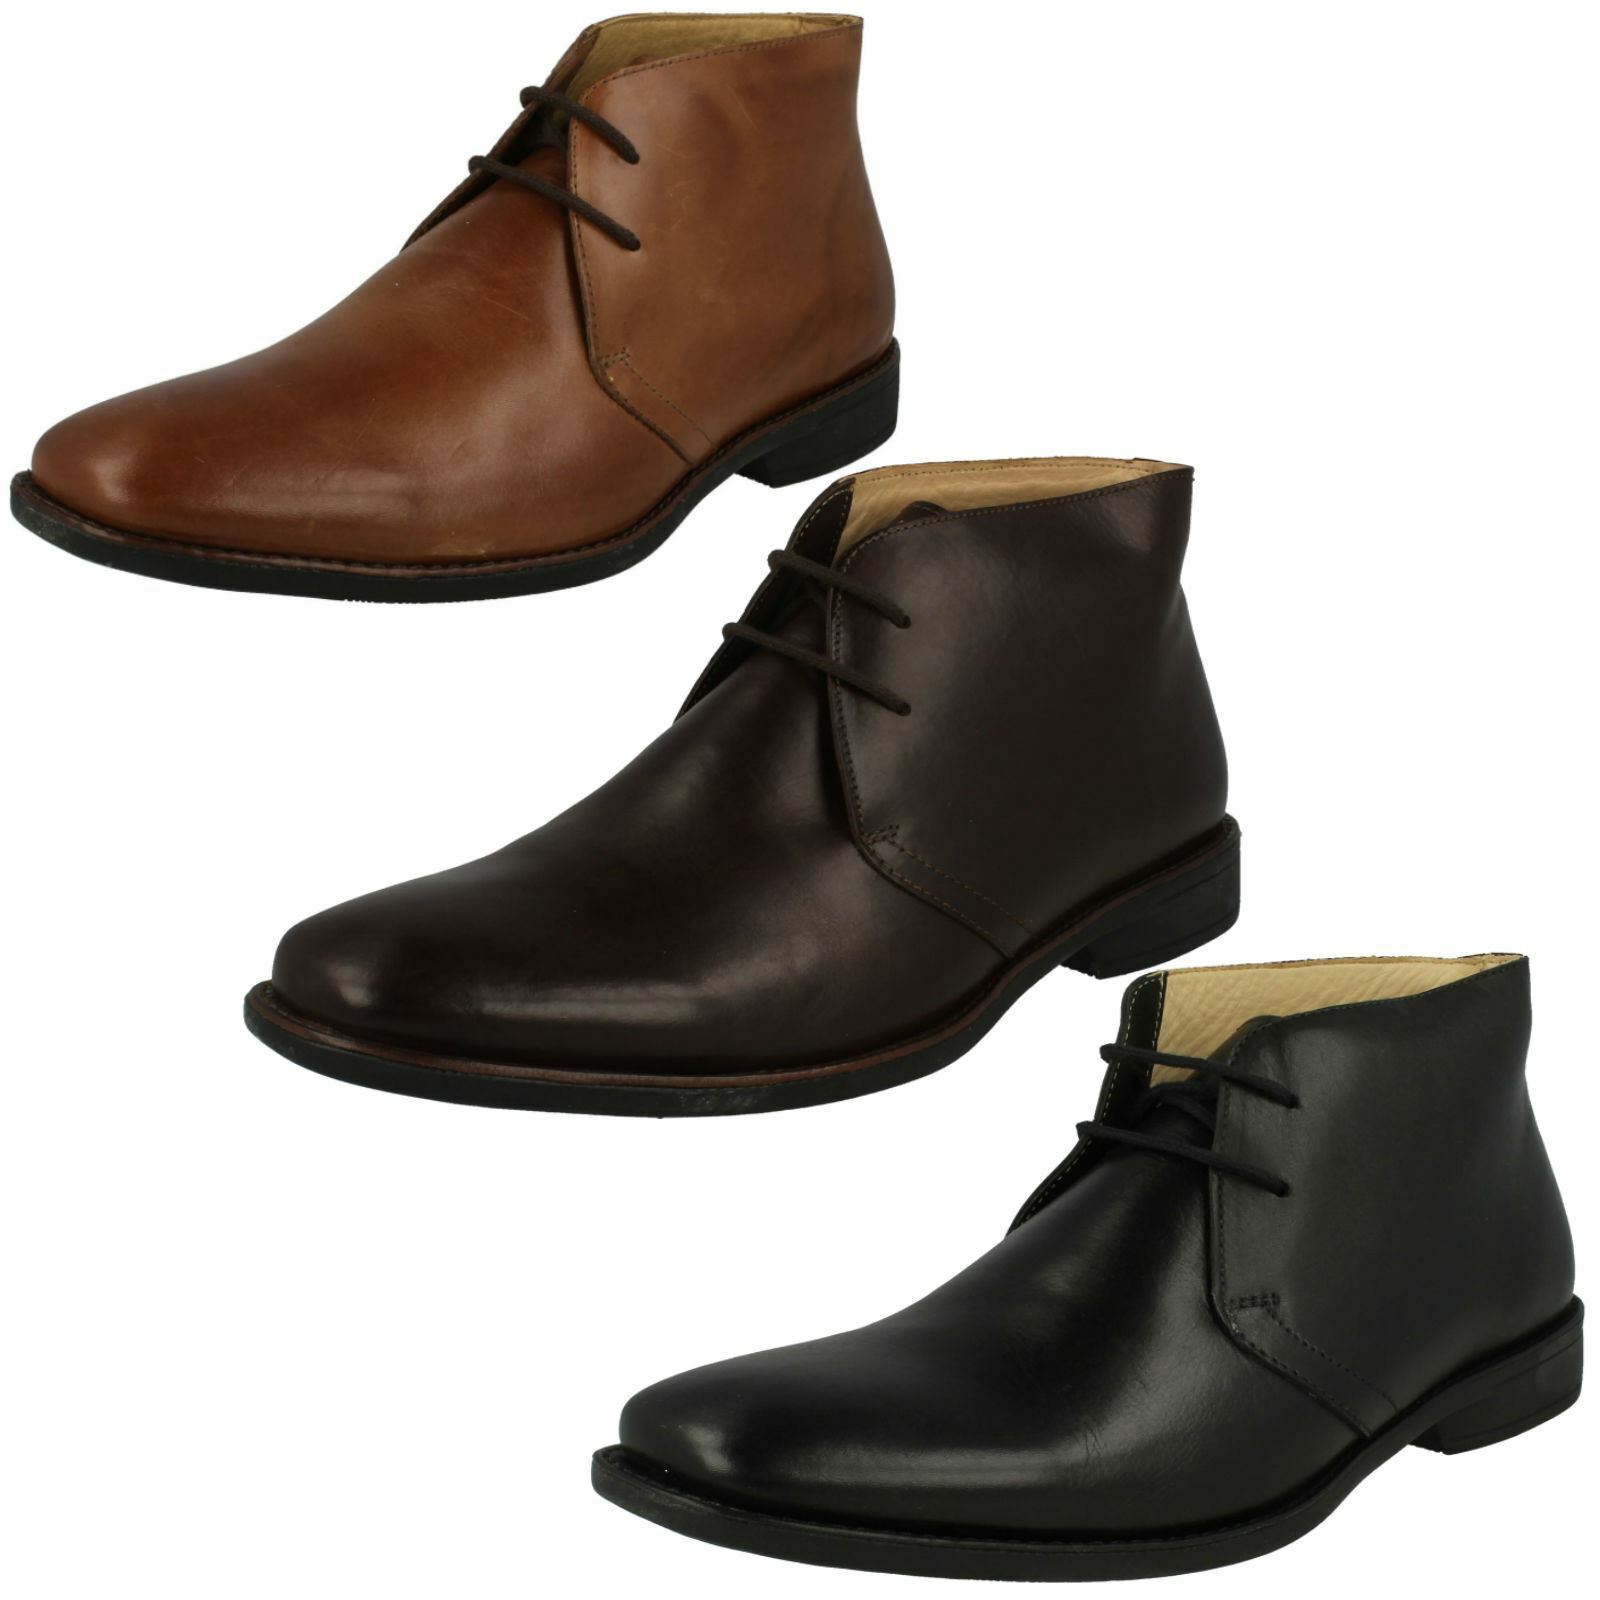 Mens Anatomic Formal Ankle Boots '929224LB'